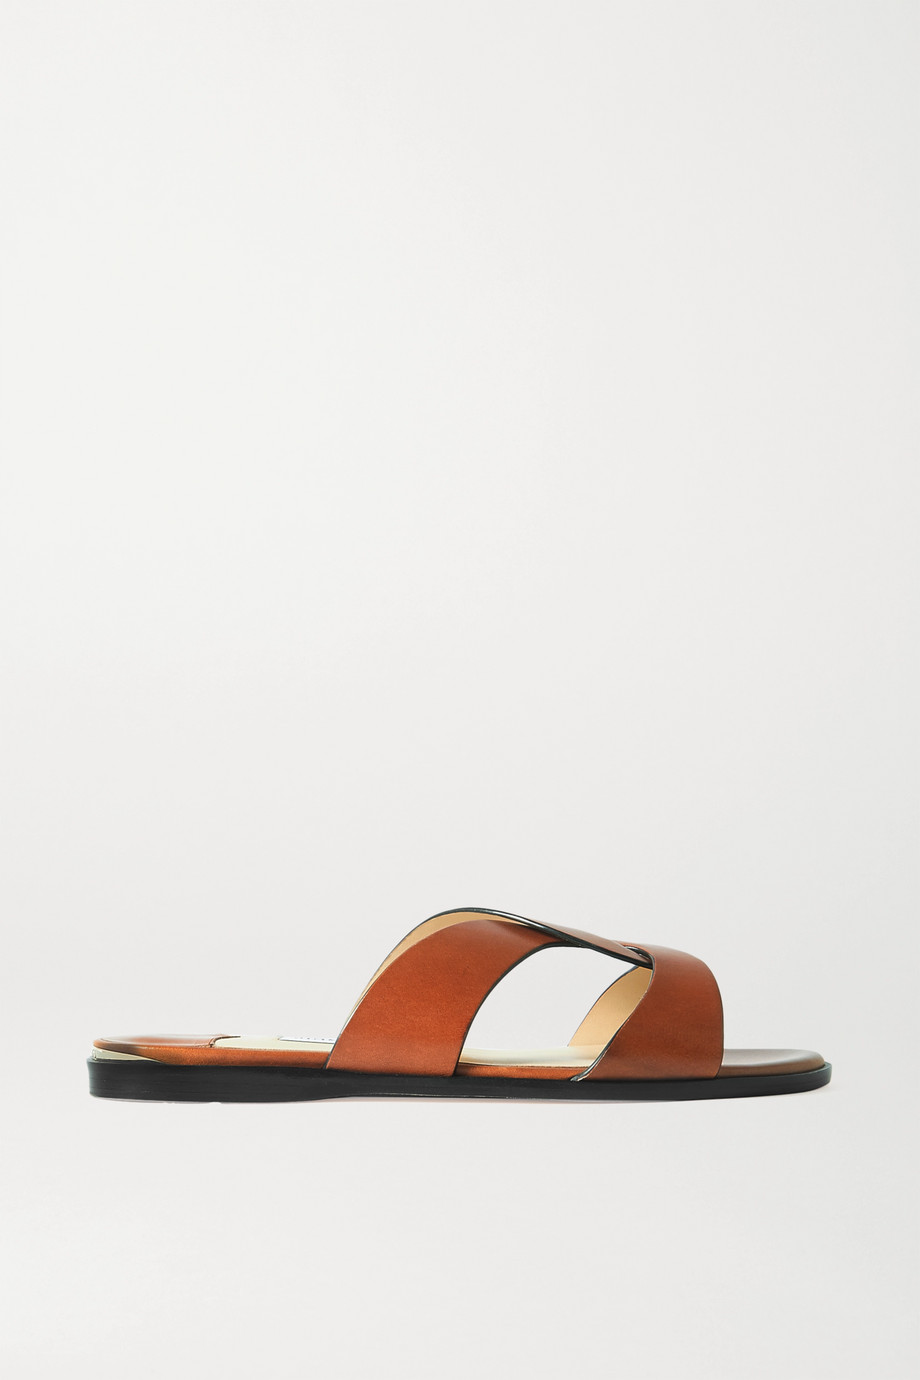 Jimmy Choo Atia leather slides